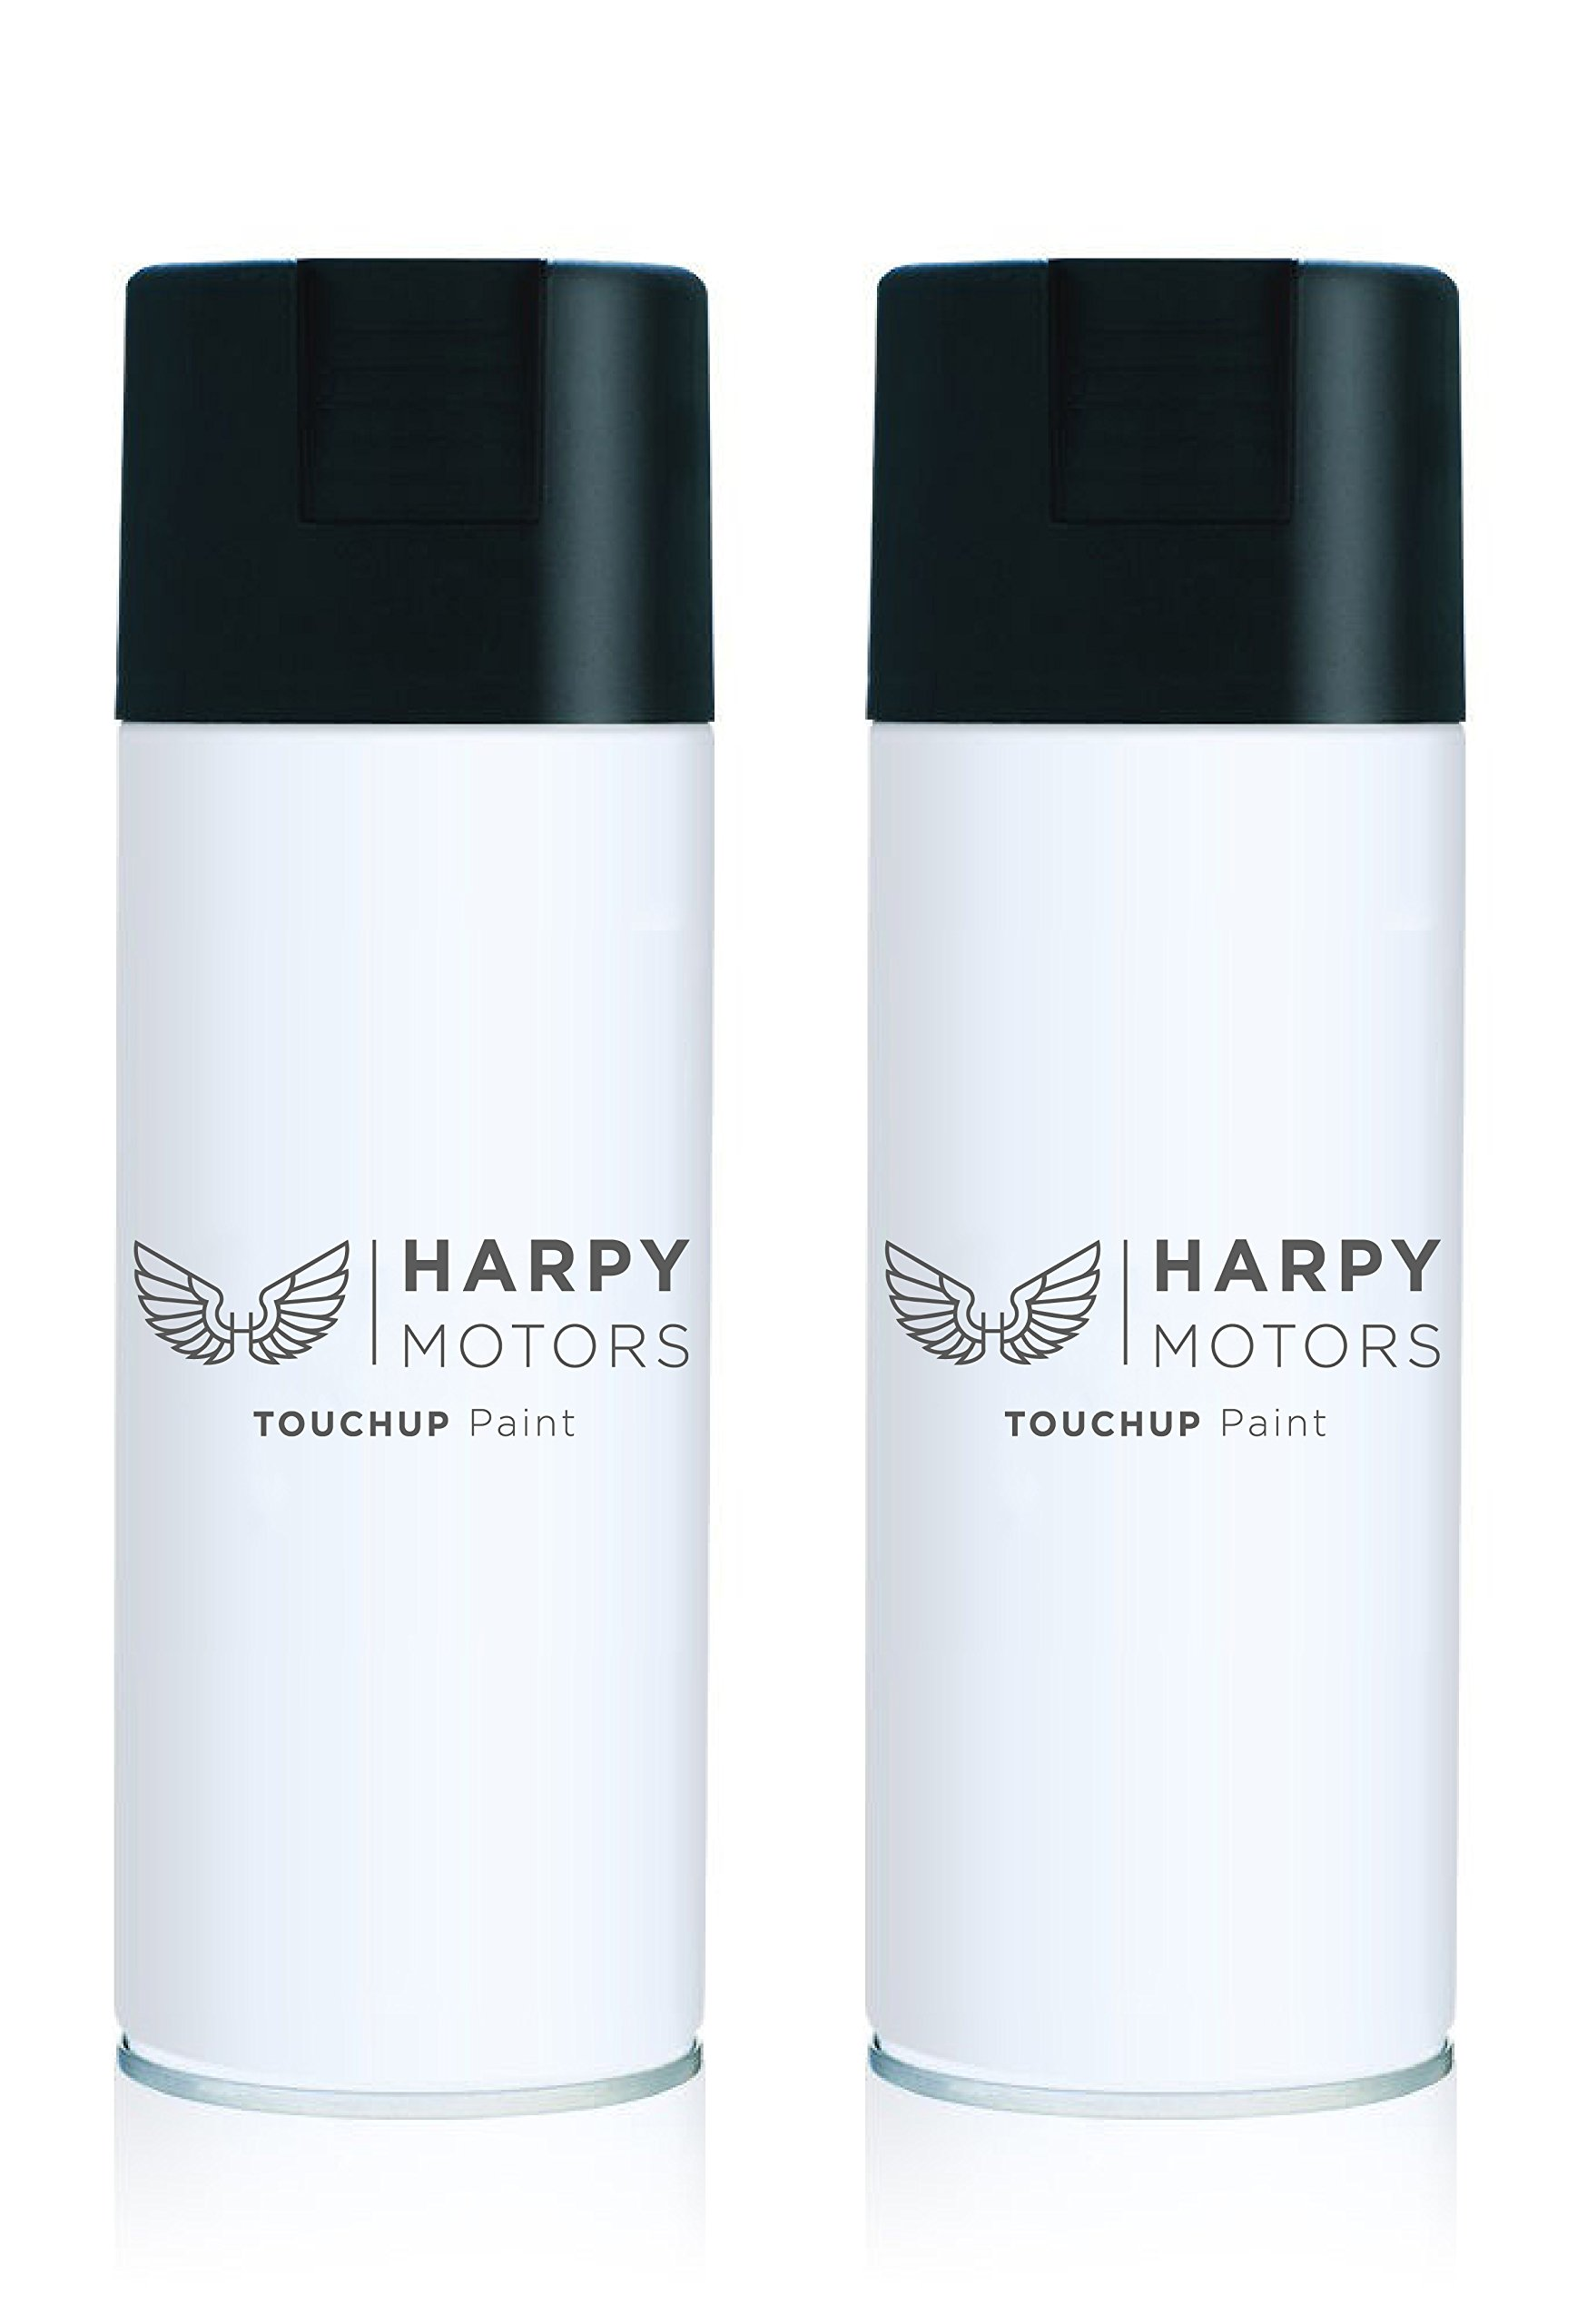 Harpy Motors 2003-2007 Honda Accord NH658P GRAPHITE PEARL Automotive 12oz Aerosol Spray Paint Kit -Color Match Guaranteed